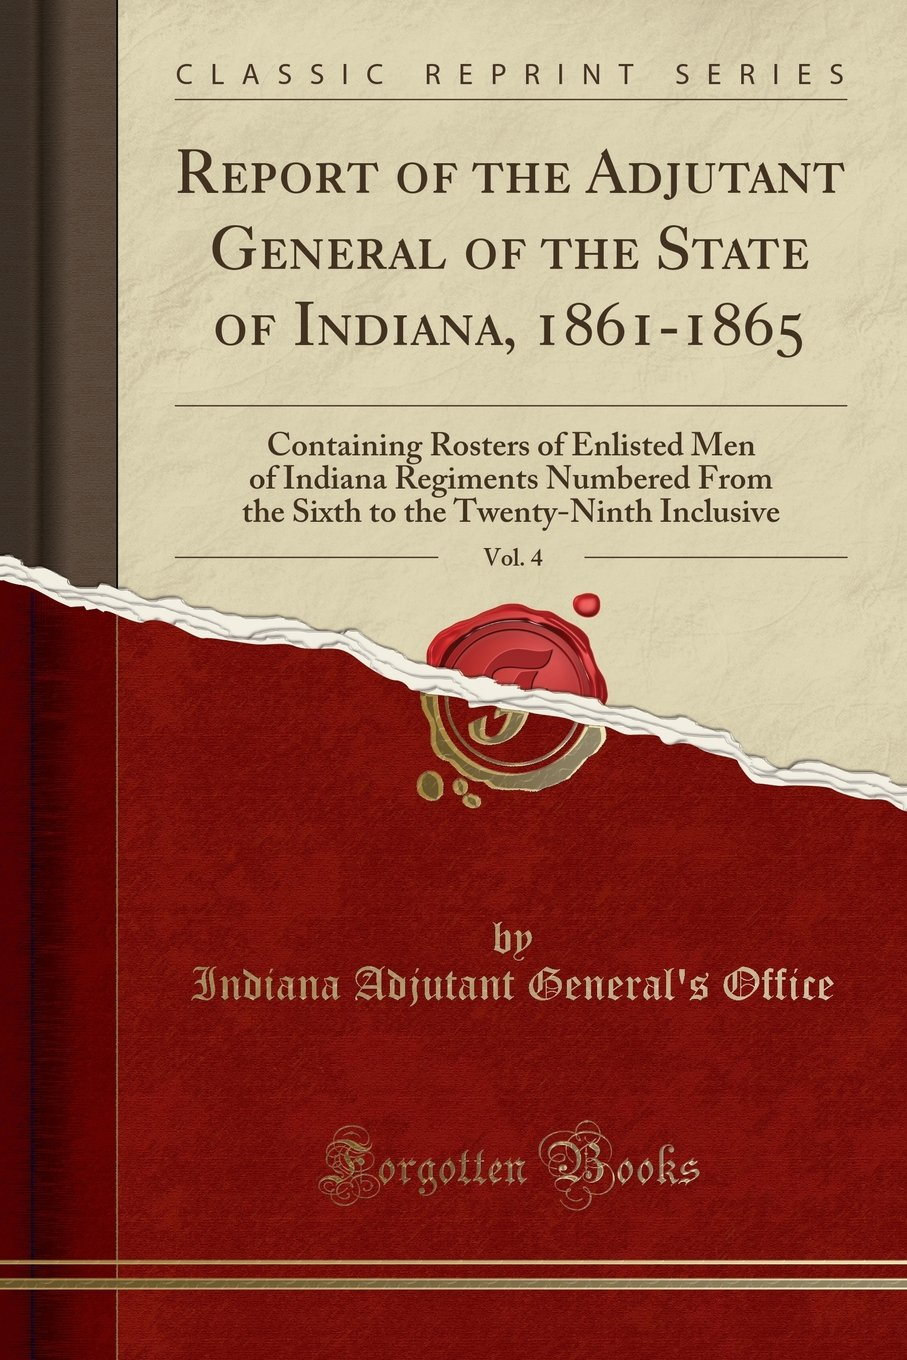 Download Report of the Adjutant General of the State of Indiana, 1861-1865, Vol. 4: Containing Rosters of Enlisted Men of Indiana Regiments Numbered From the ... the Twenty-Ninth Inclusive (Classic Reprint) pdf